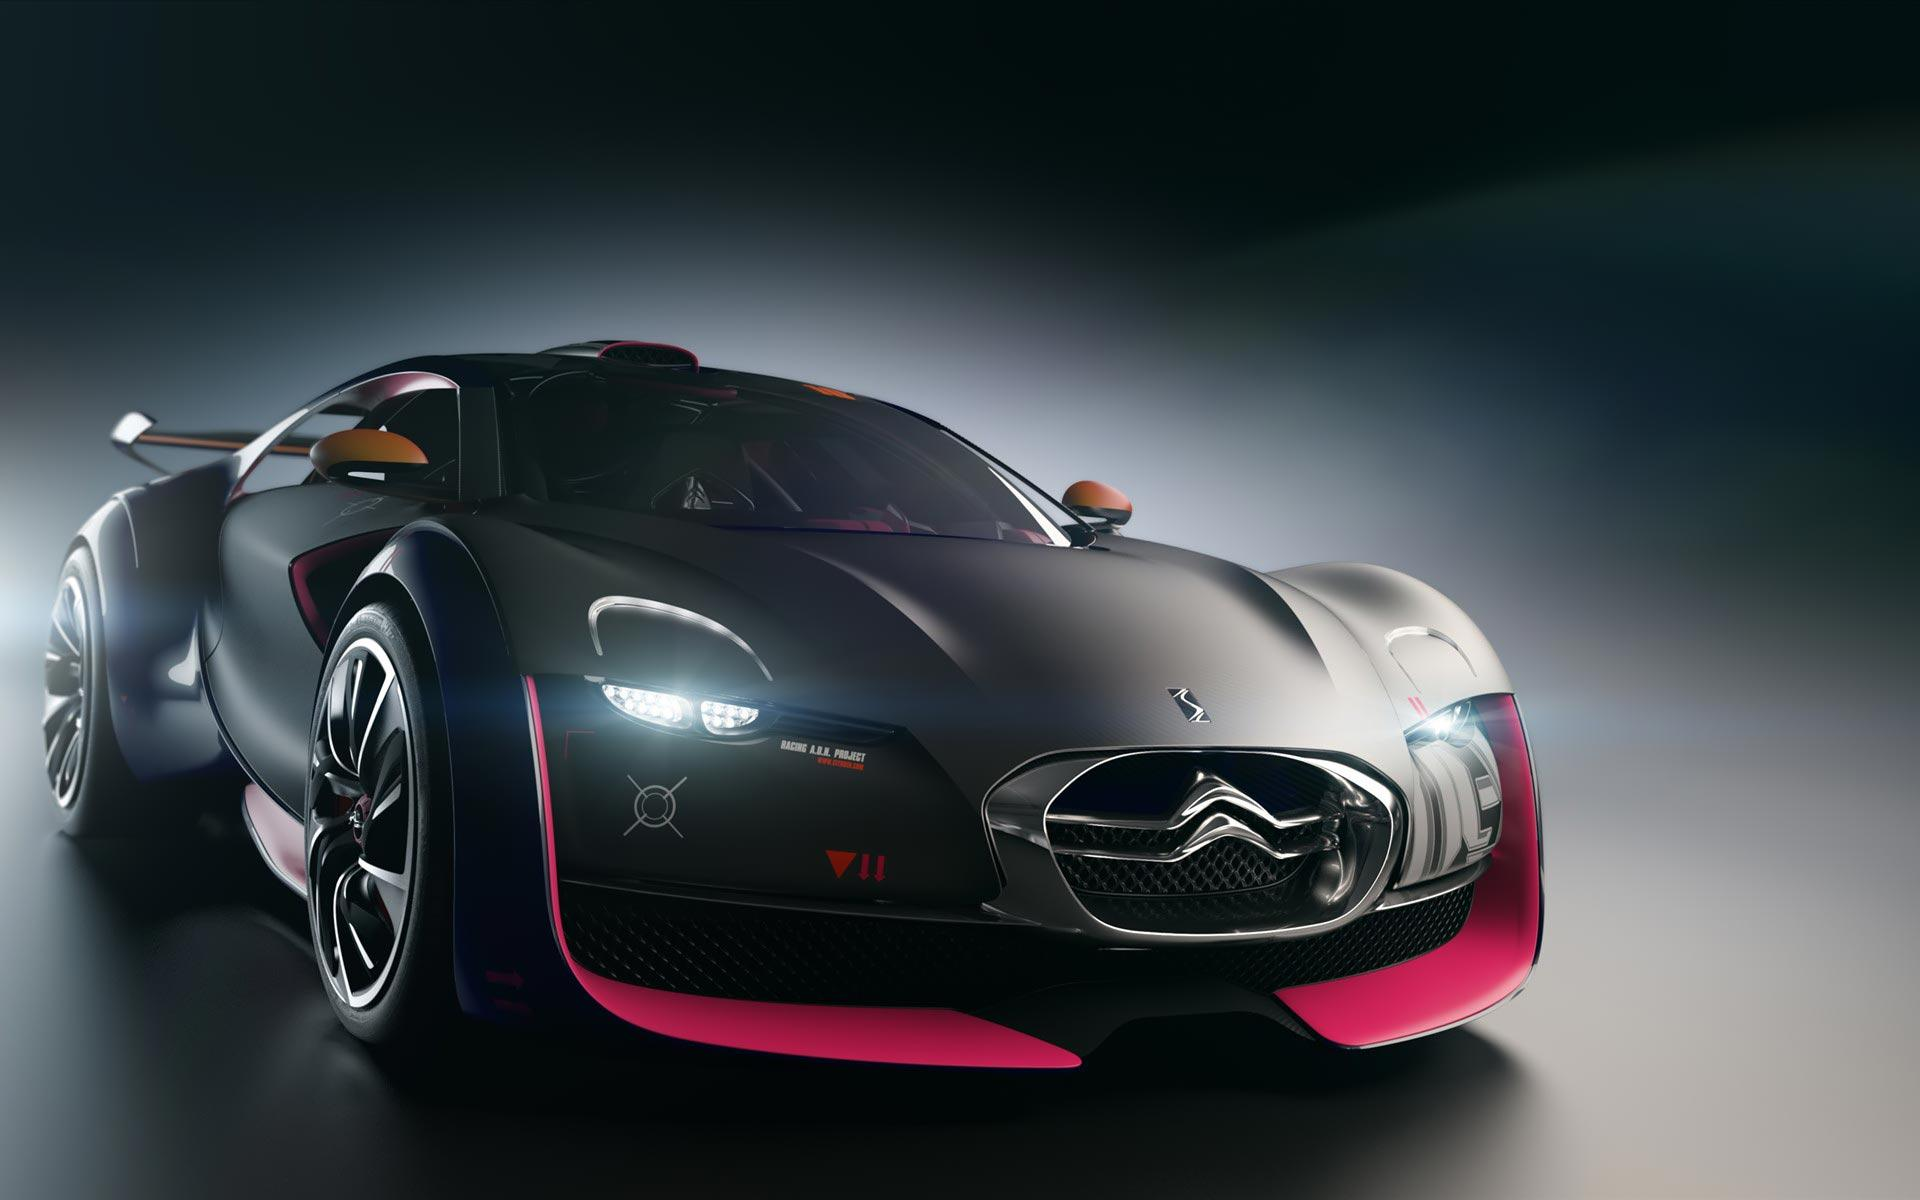 Wallpapers Of Car Logo In Hd For Pc Wallpaper Cave